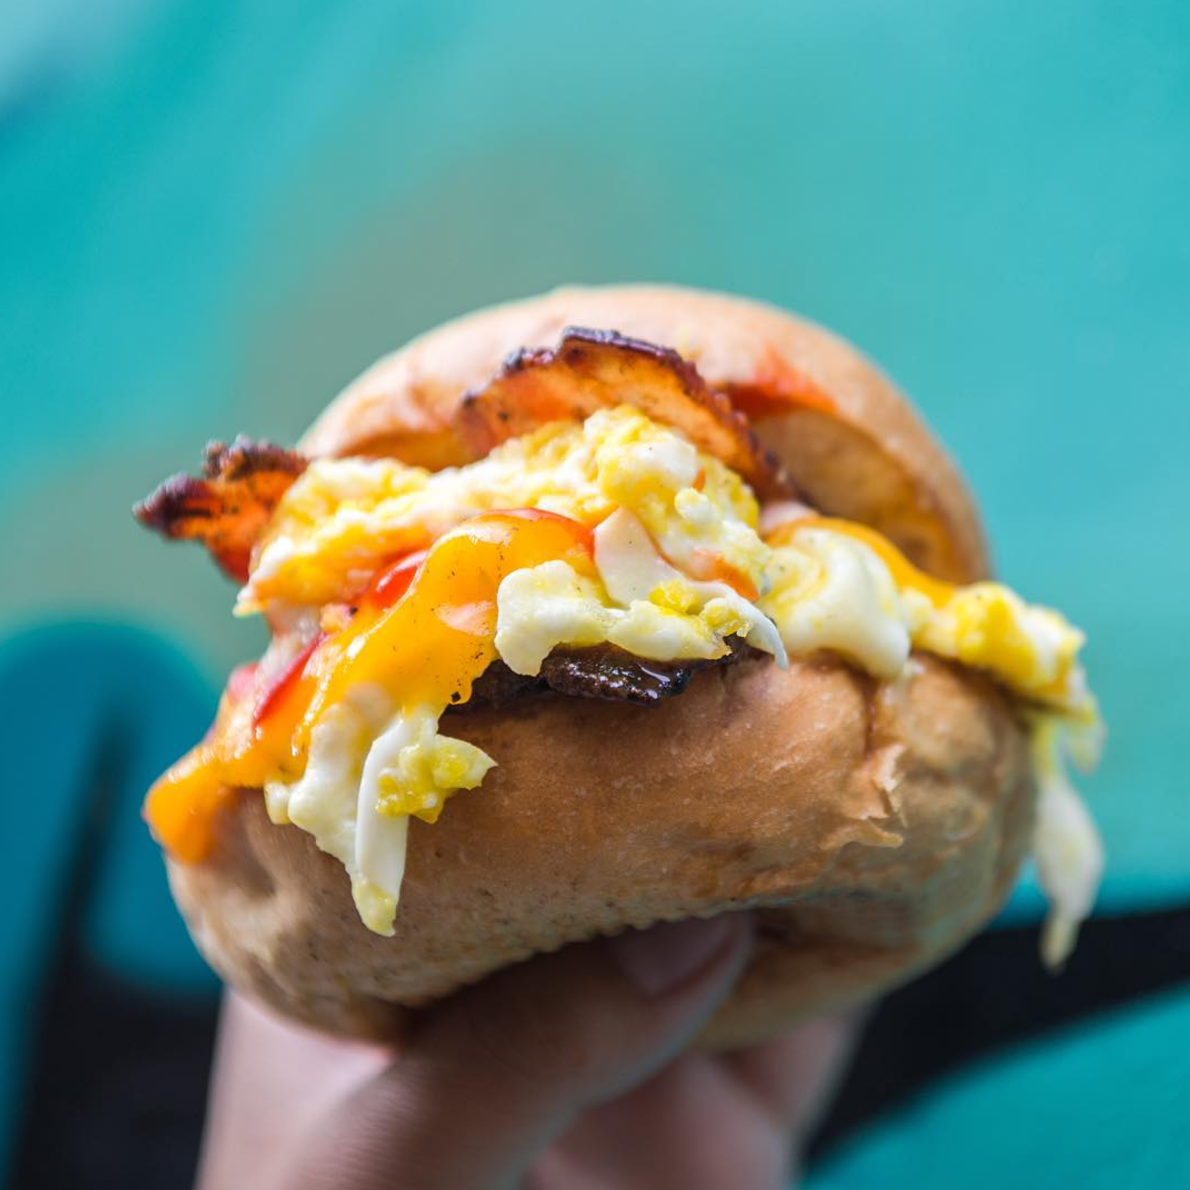 Candied Bacon Egg & Cheese Sandwich | photo courtesy of @feastie.boys on instagram